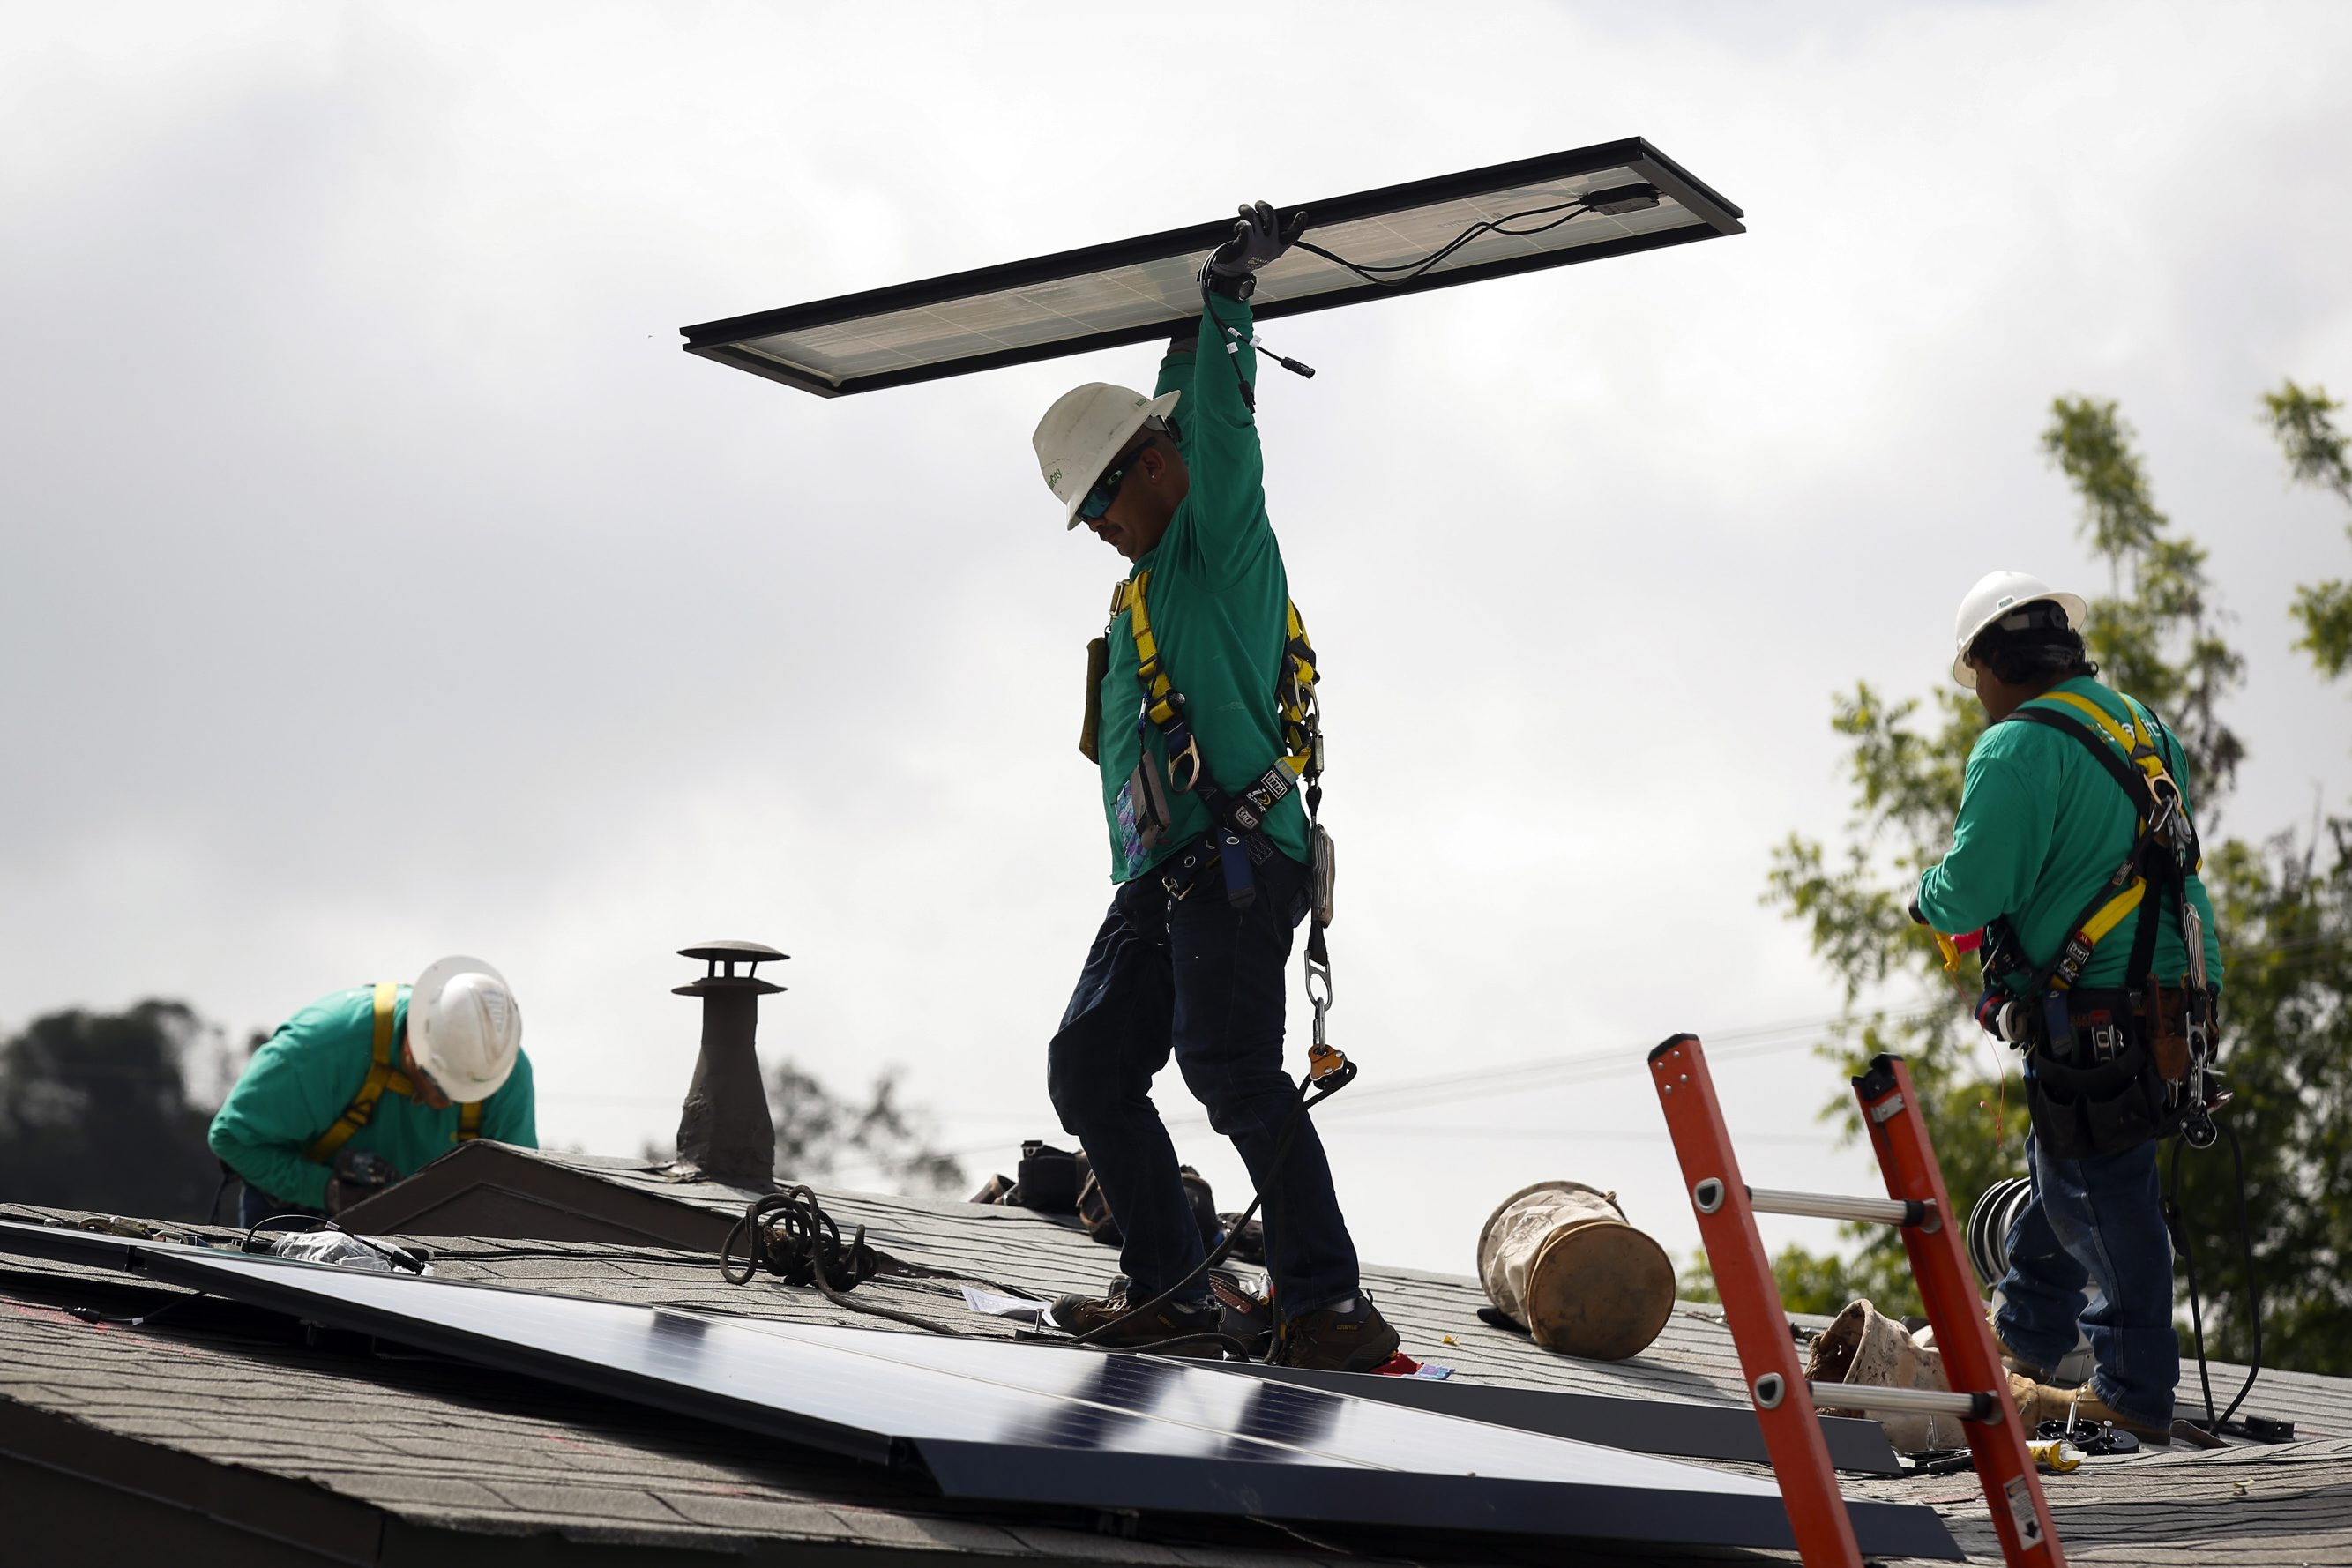 A SolarCity employee carries a solar panel being installed on the roof of a home. (Bloomberg file photo)